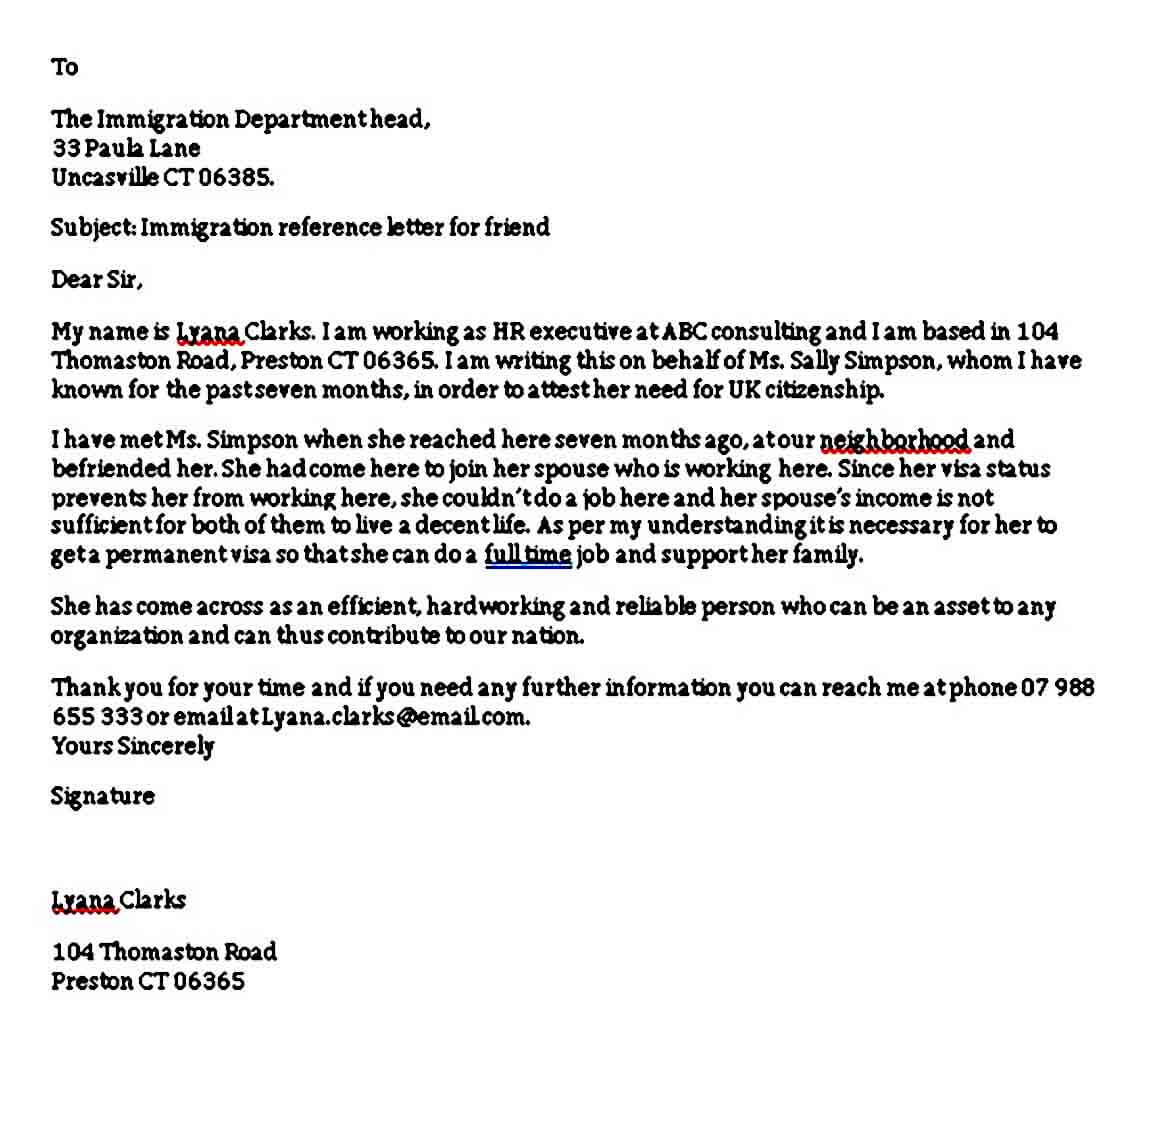 Immigration Reference Letter For a Friend Example